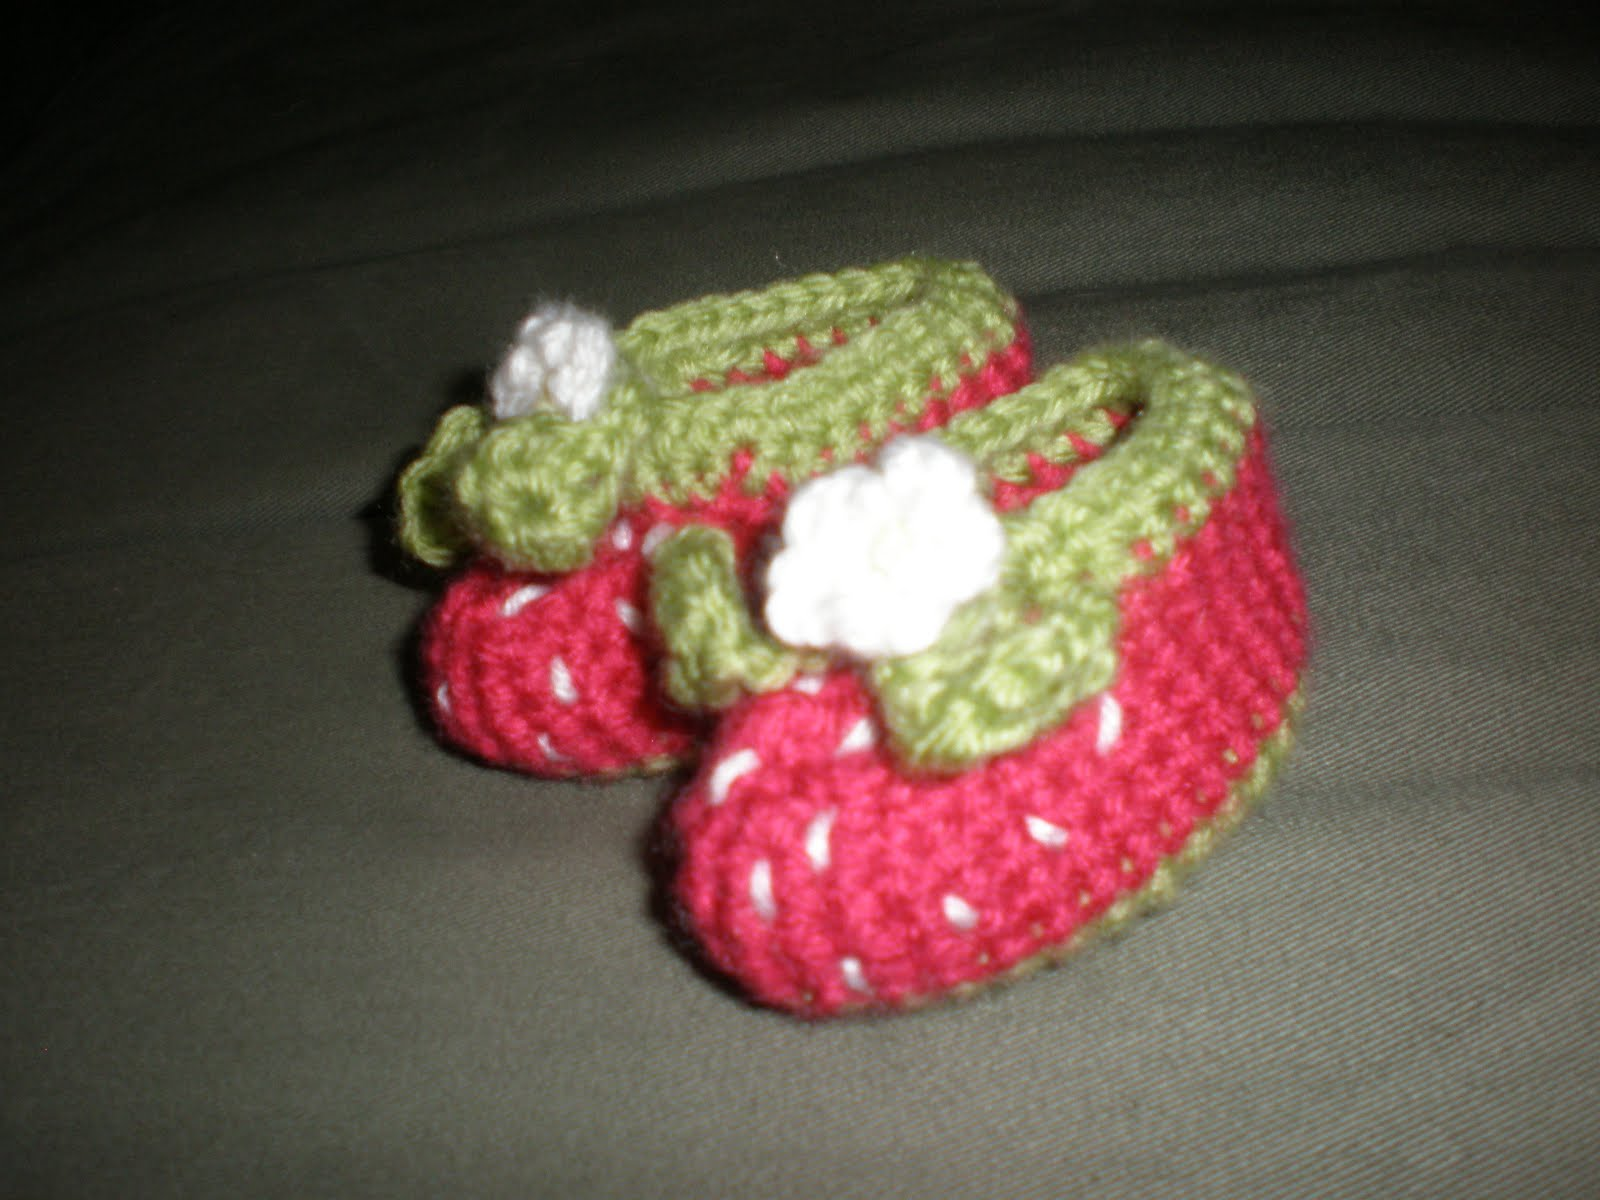 Amys Crochet: Strawberry Baby Booties